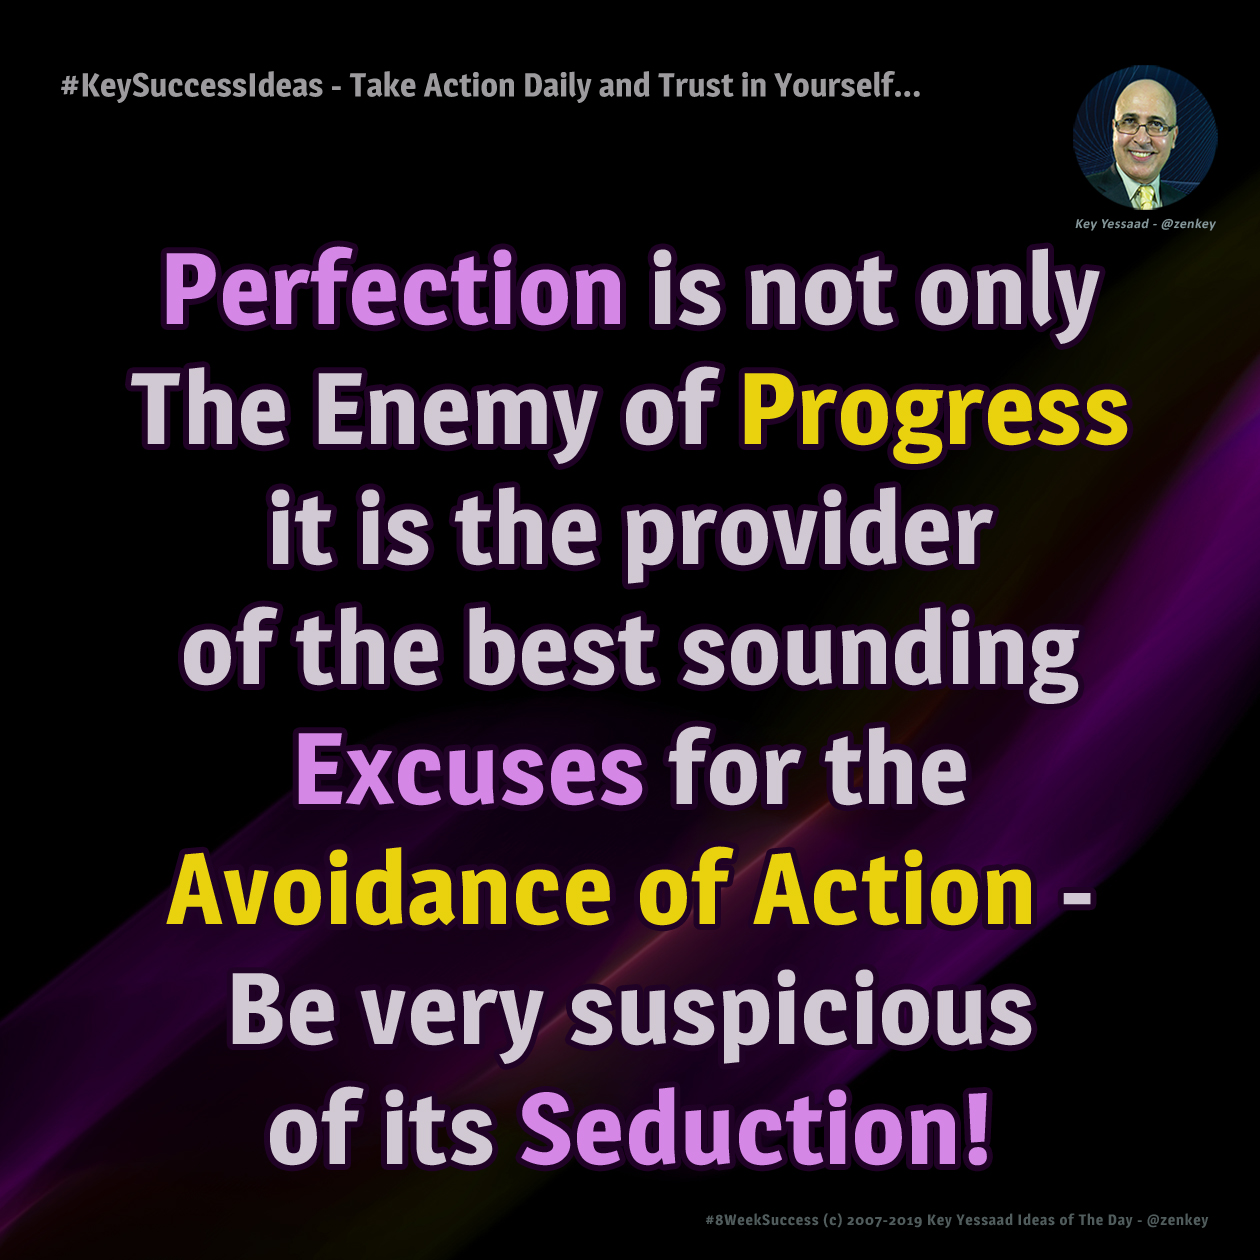 #KeySuccessIdeas - Take Action Daily and Trust in Yourself...